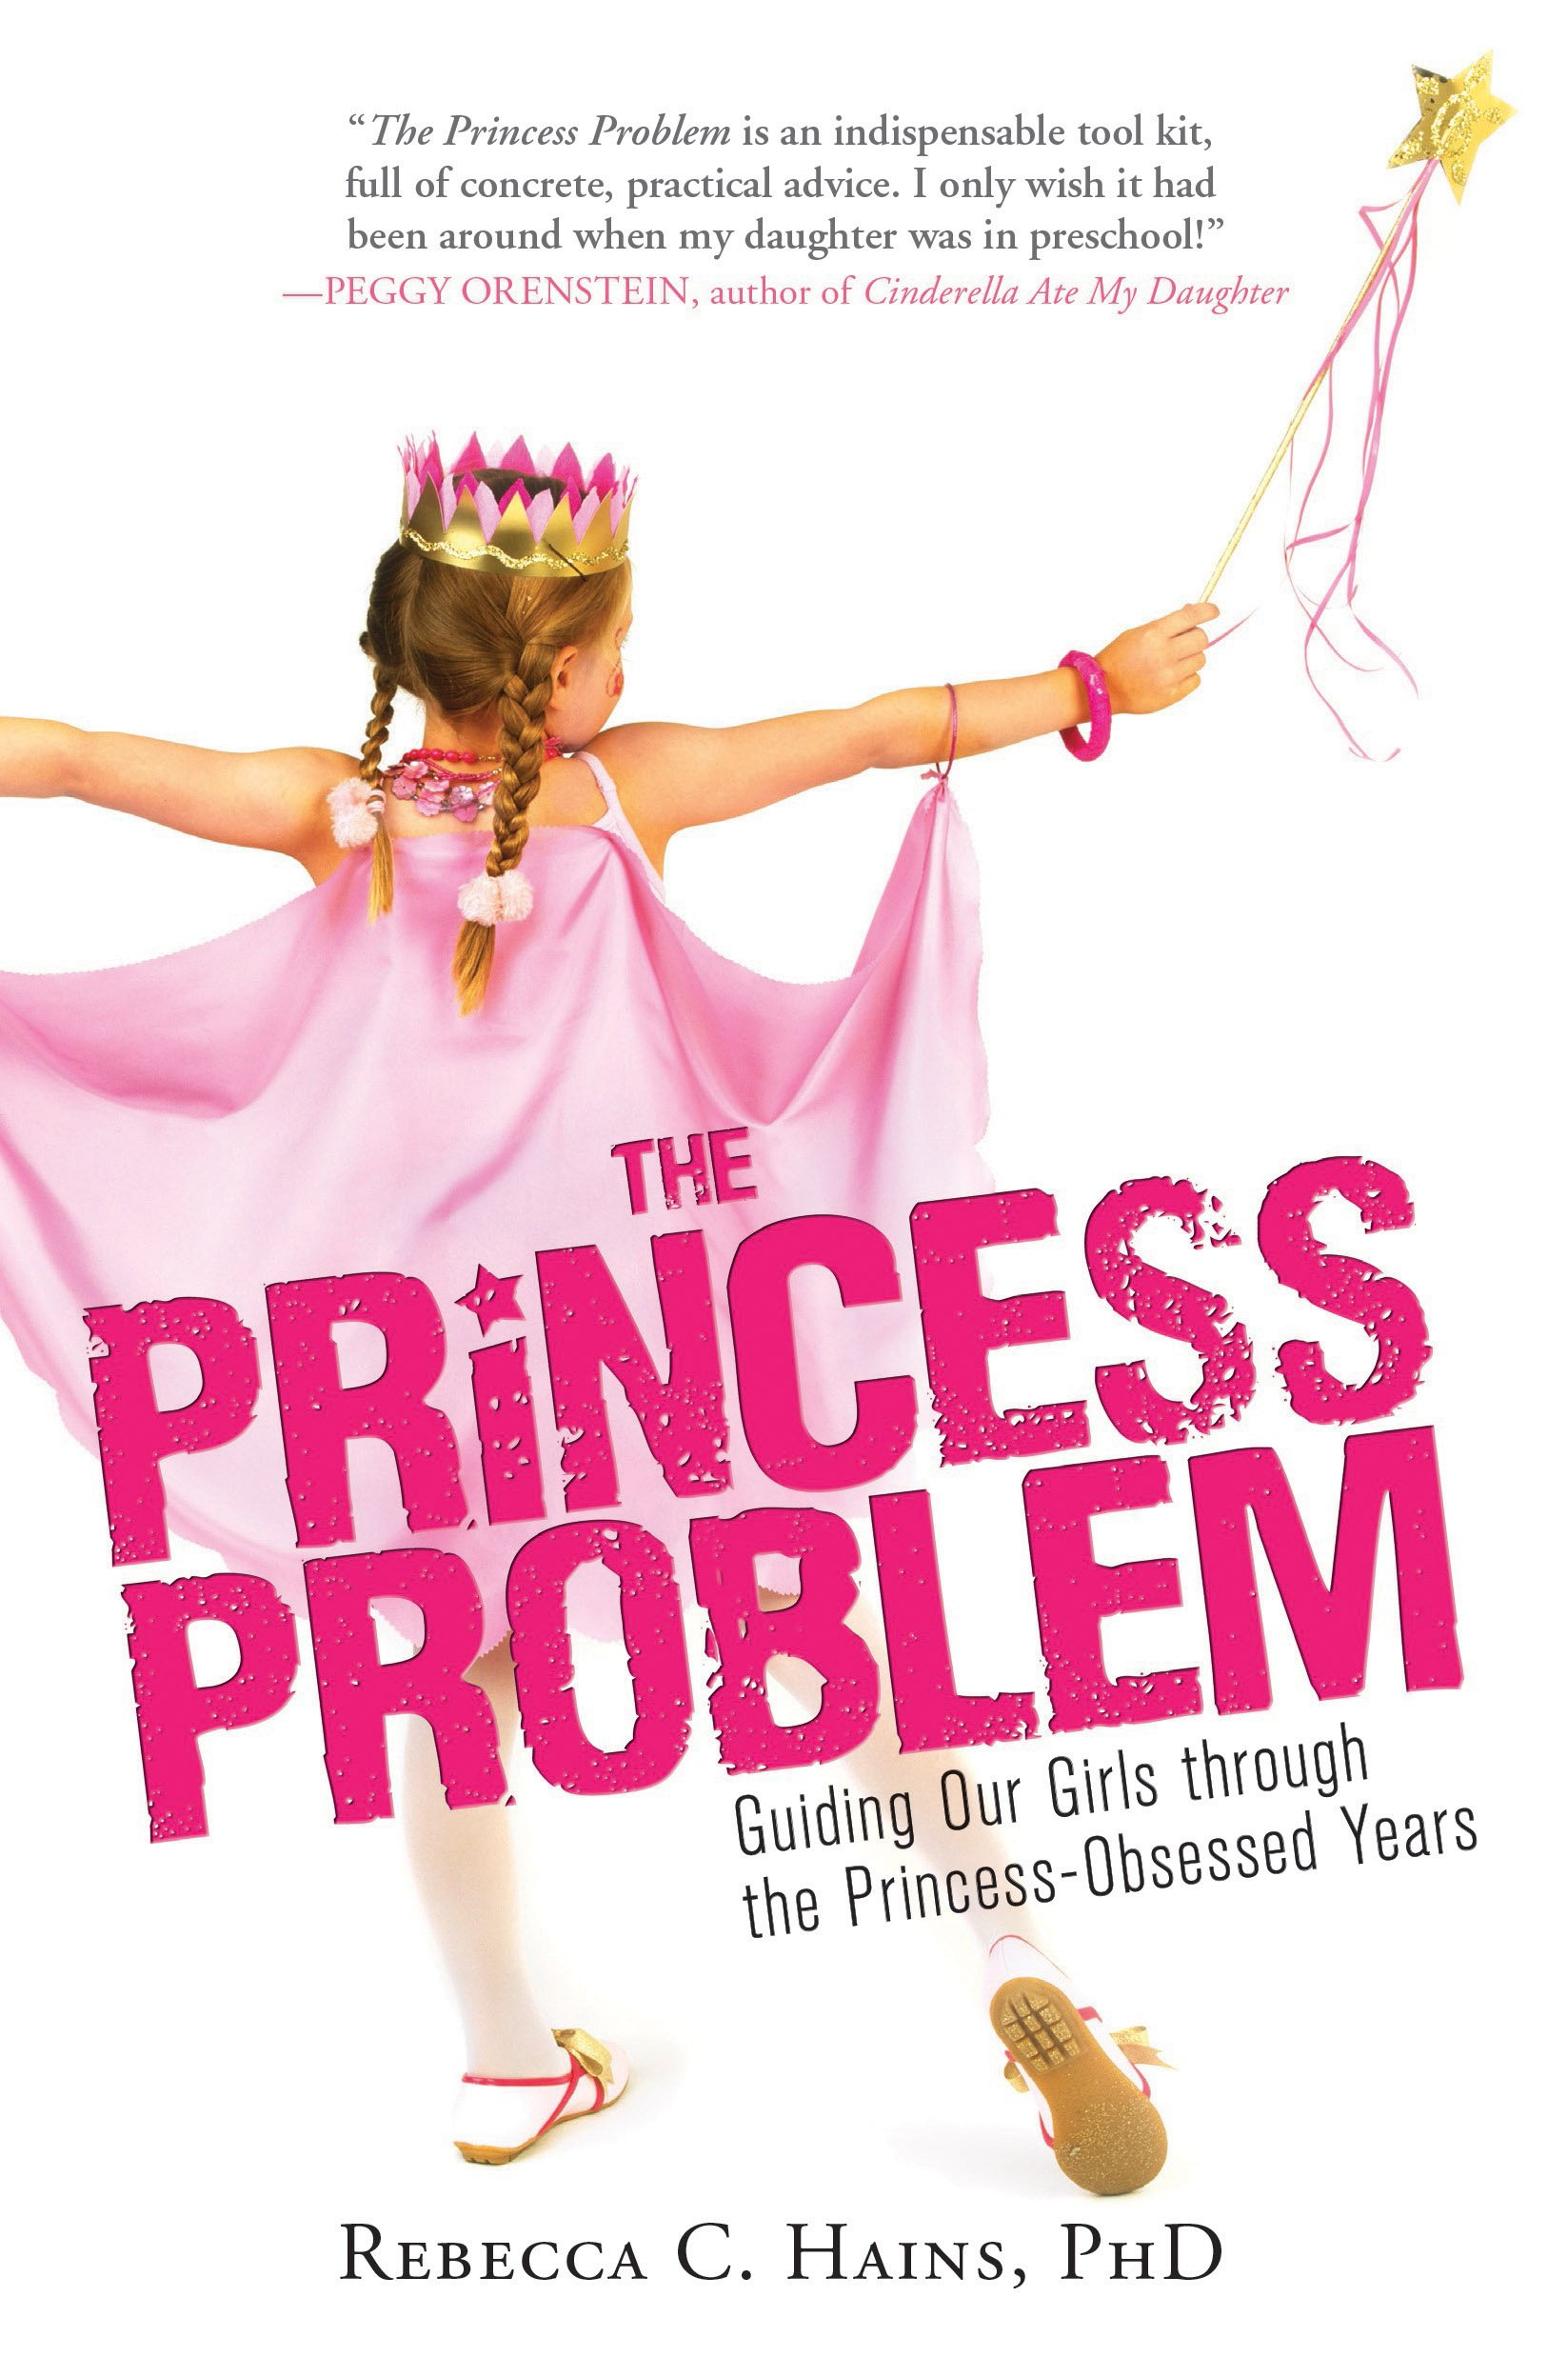 The Princess Problem Guiding Our Girls Through Obsessed Years Rebecca Hains 0760789245336 Amazon Books